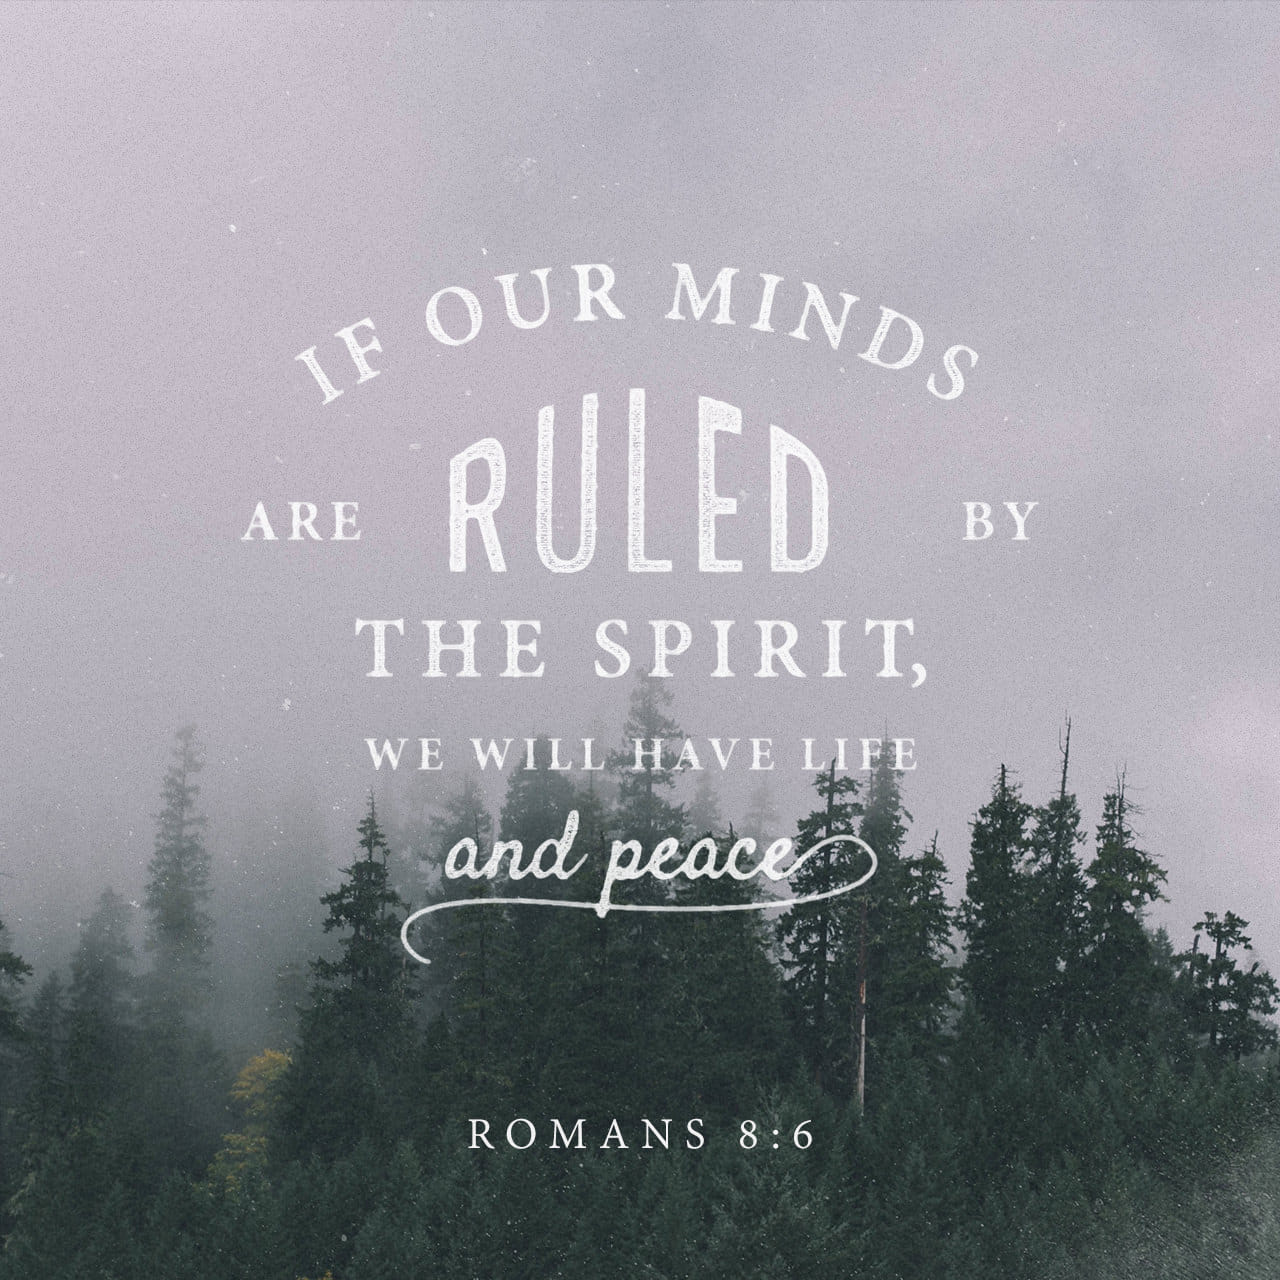 Romans 8:8 So then, those who are in the flesh cannot please God